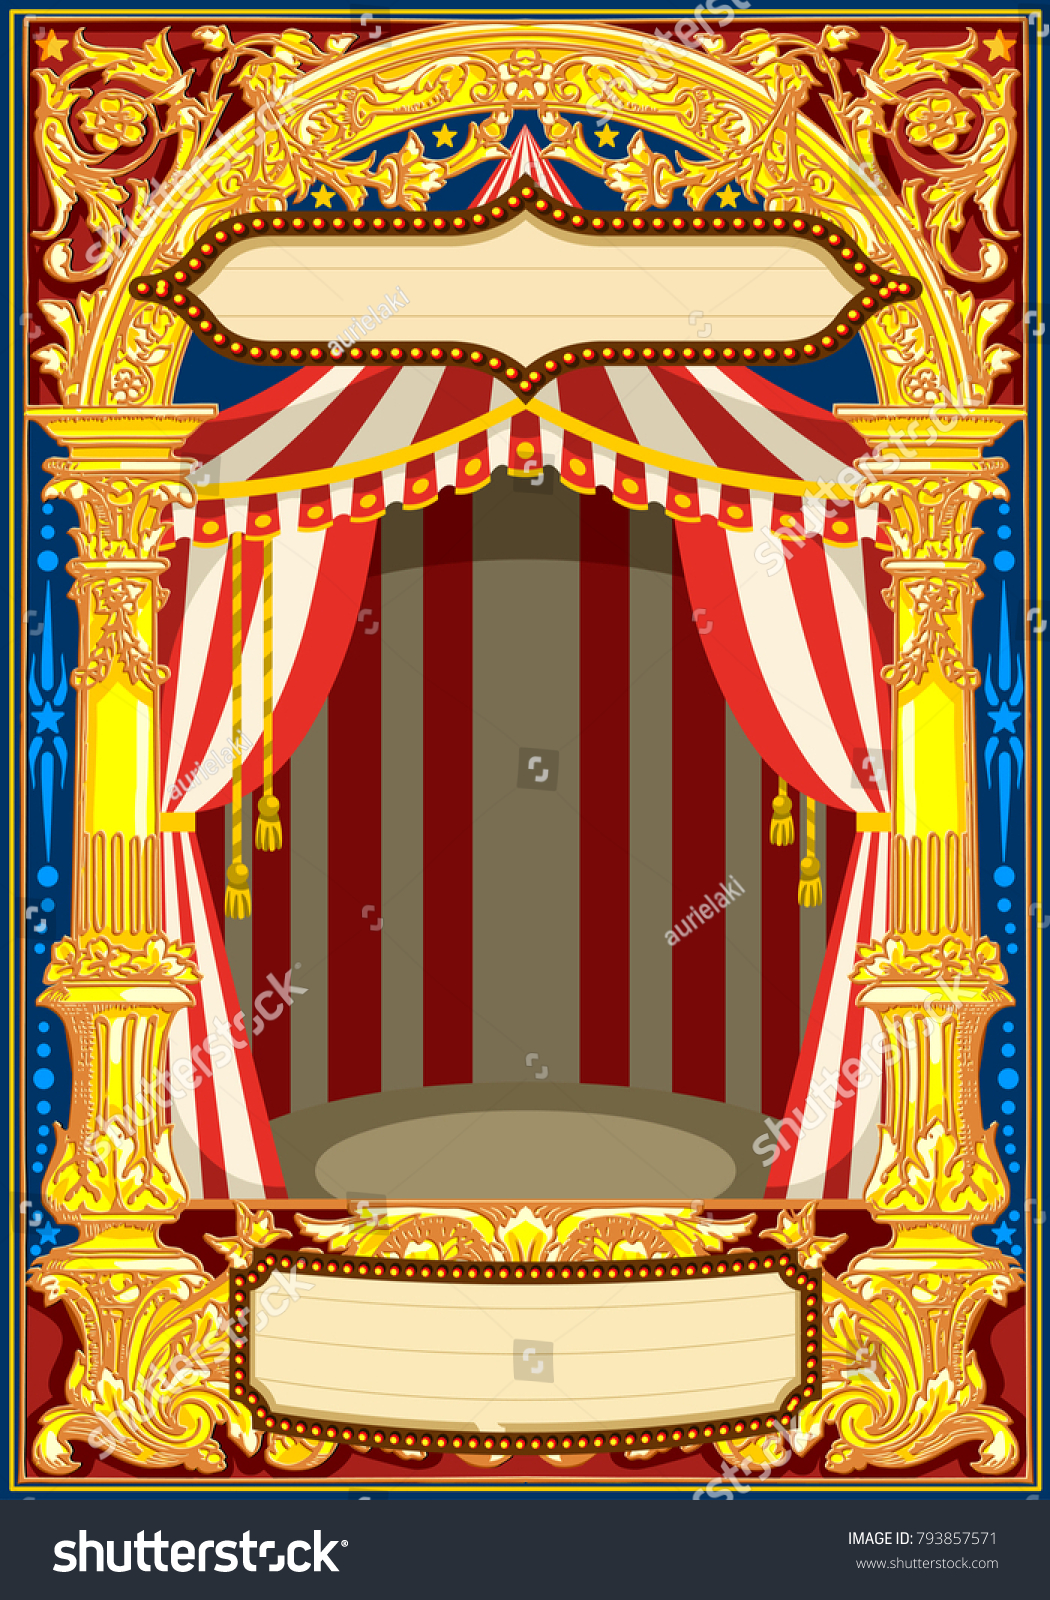 carnival poster template circus vintage theme のベクター画像素材